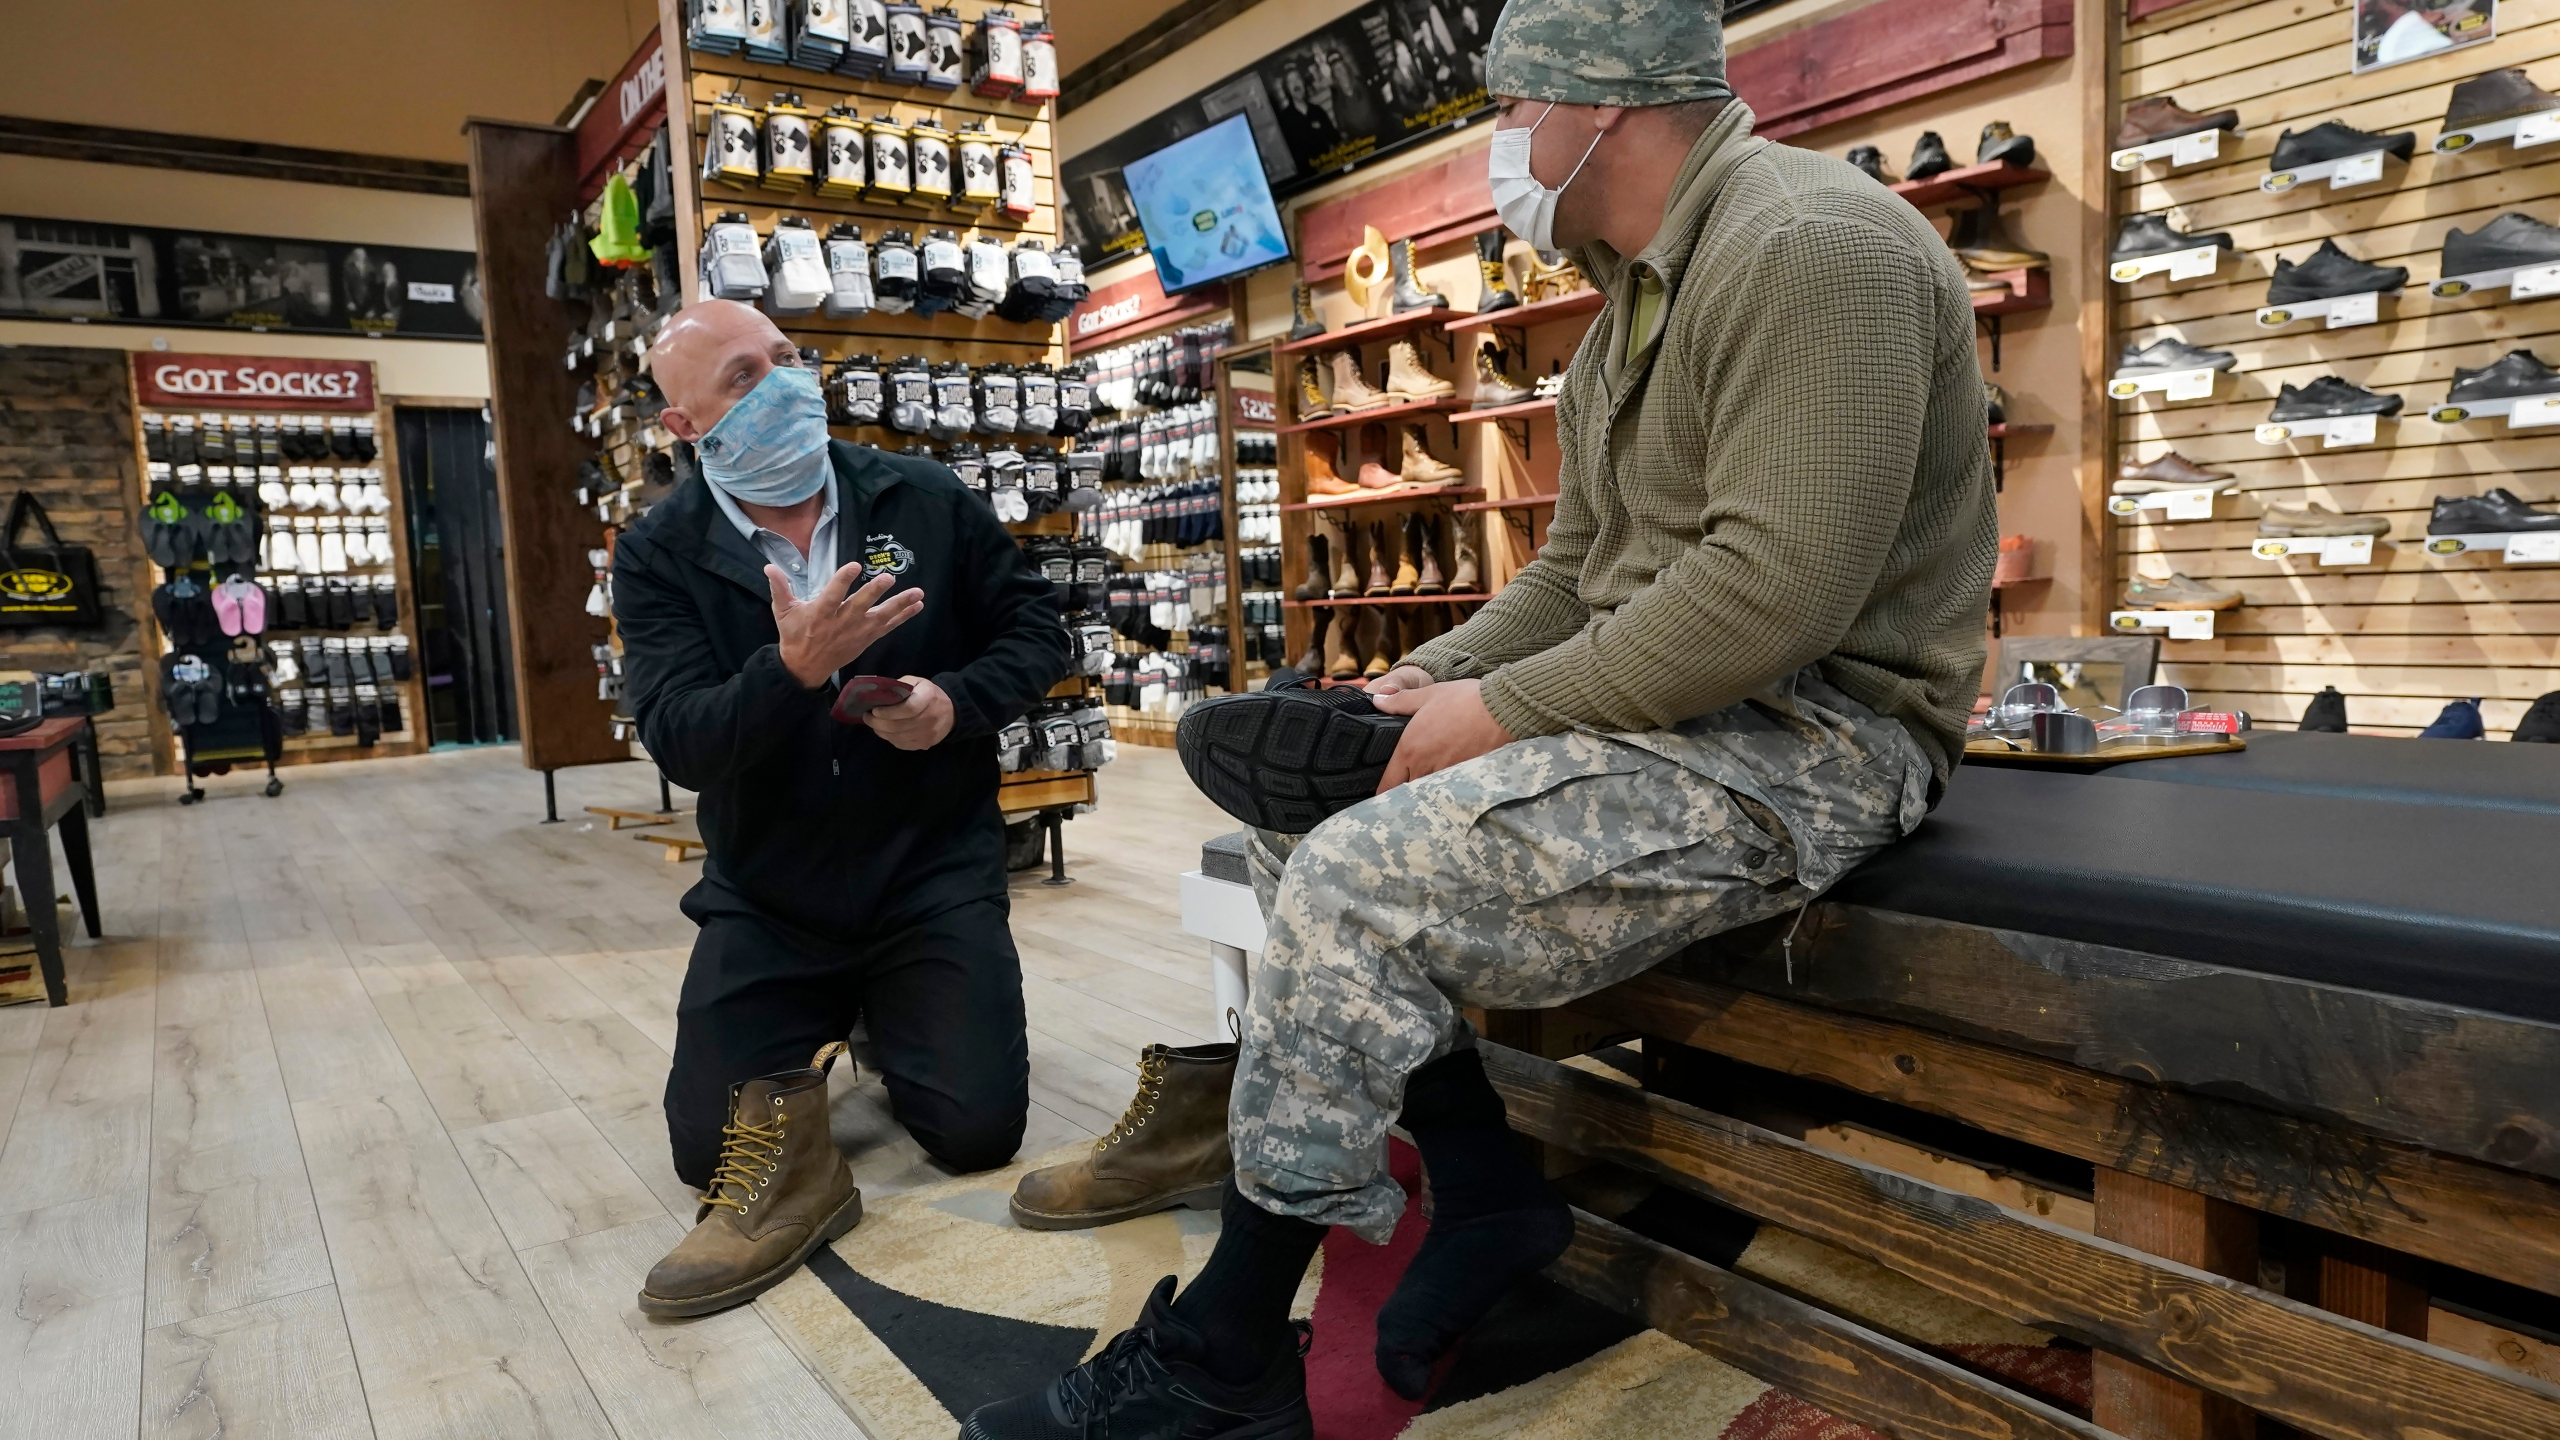 Patrick Marks, left, helps customer Jesus Chavez at Beck's Shoes in the Sutter County committee of Yuba City, Calif., on Nov. 17, 2020. (Rich Pedroncelli / Associated Press)